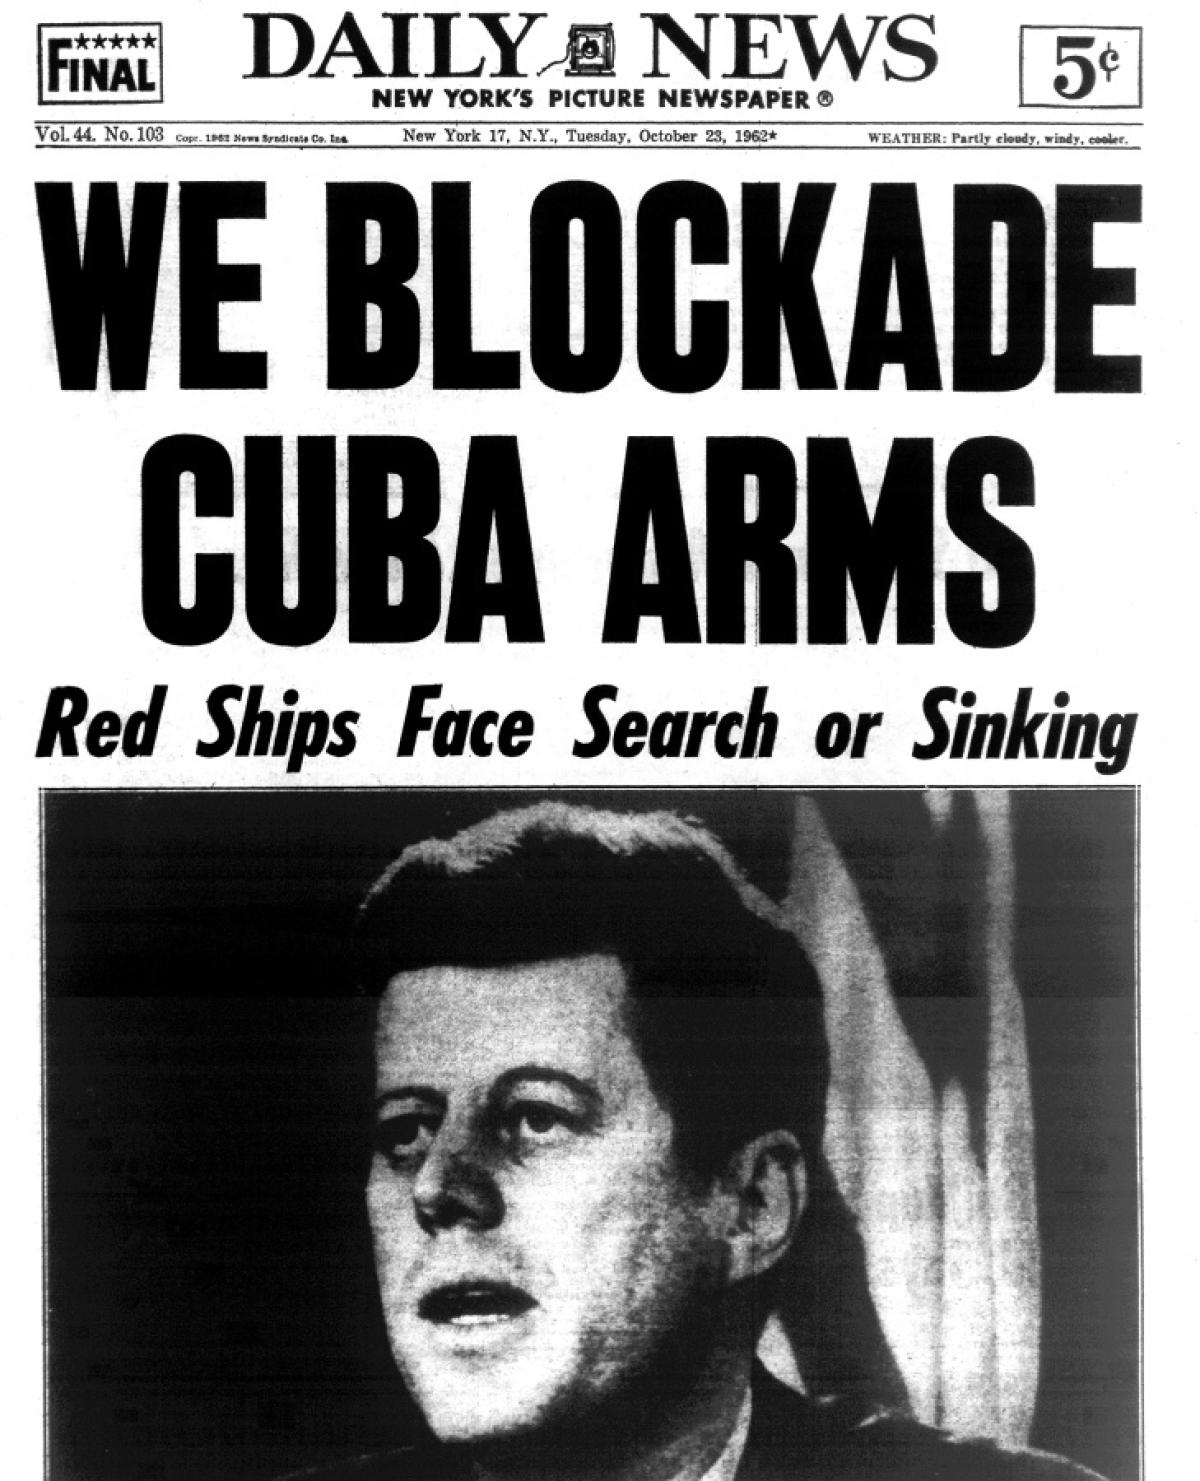 significance of cuban missile crisis Significance effects of the cuban missile crisis overall, the end results of the cuban missile crisis could've turned out a lot worse than they did.